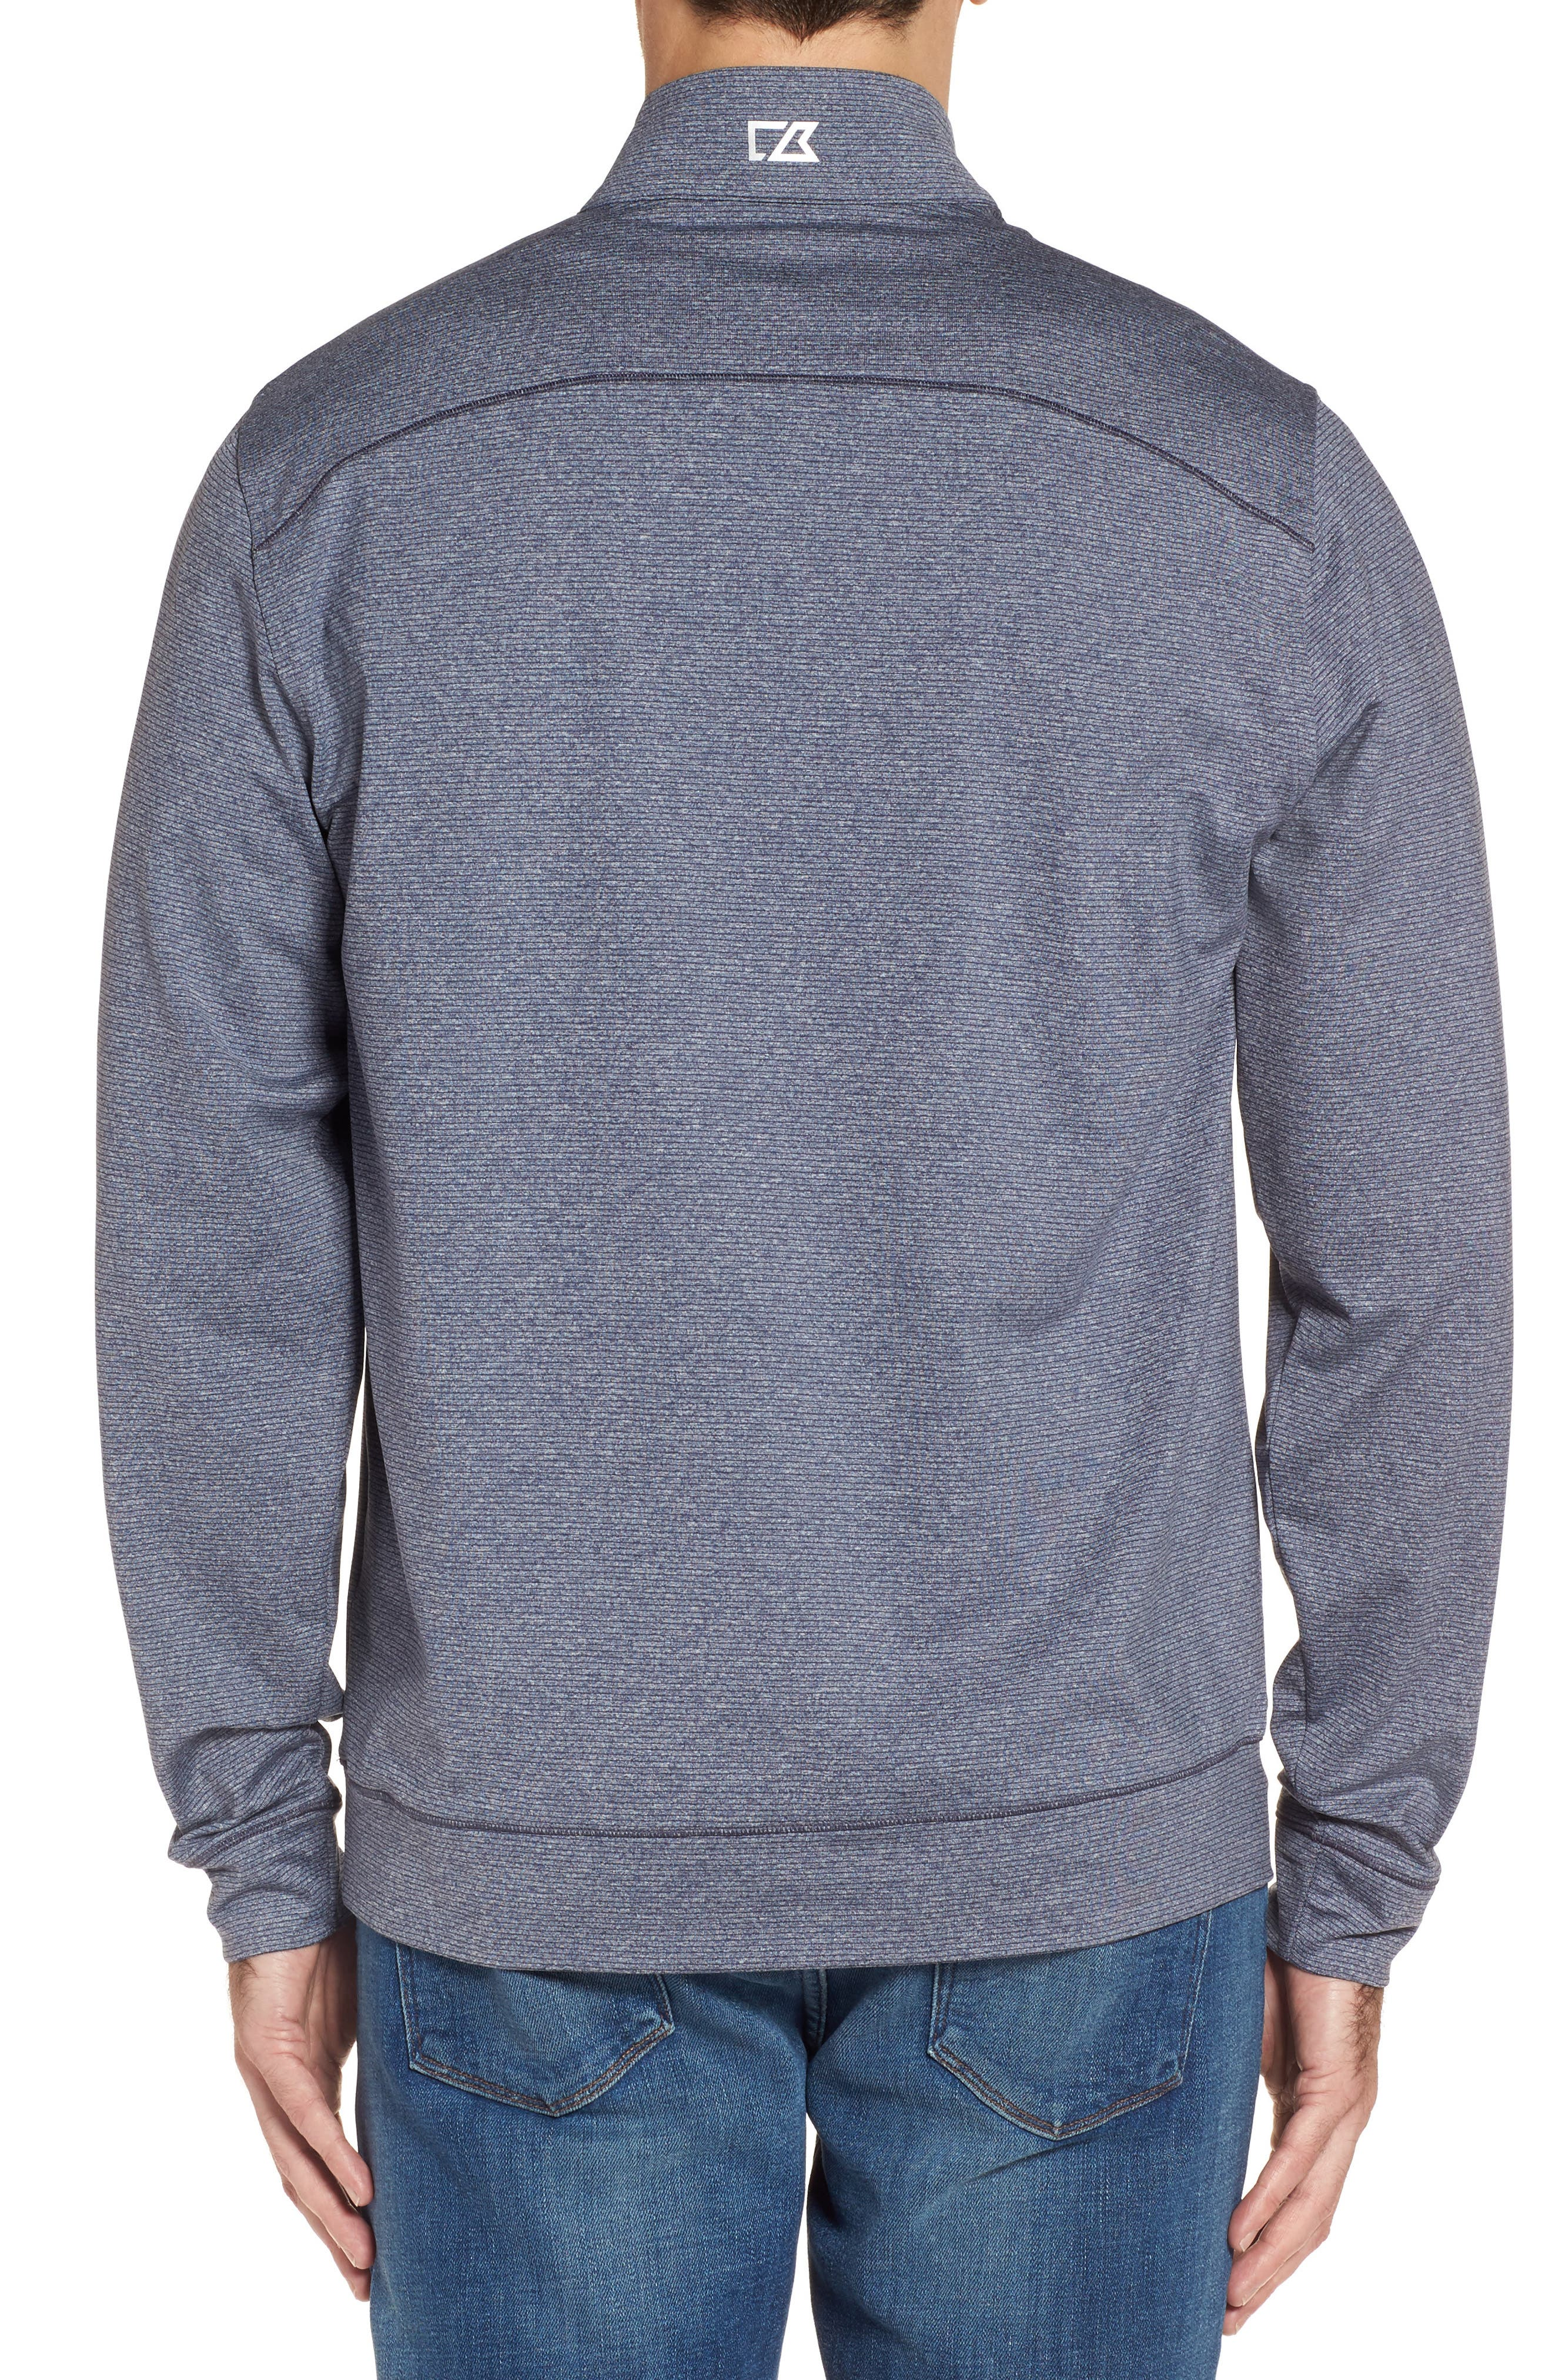 Shoreline - New England Patriots Half Zip Pullover,                             Alternate thumbnail 2, color,                             976